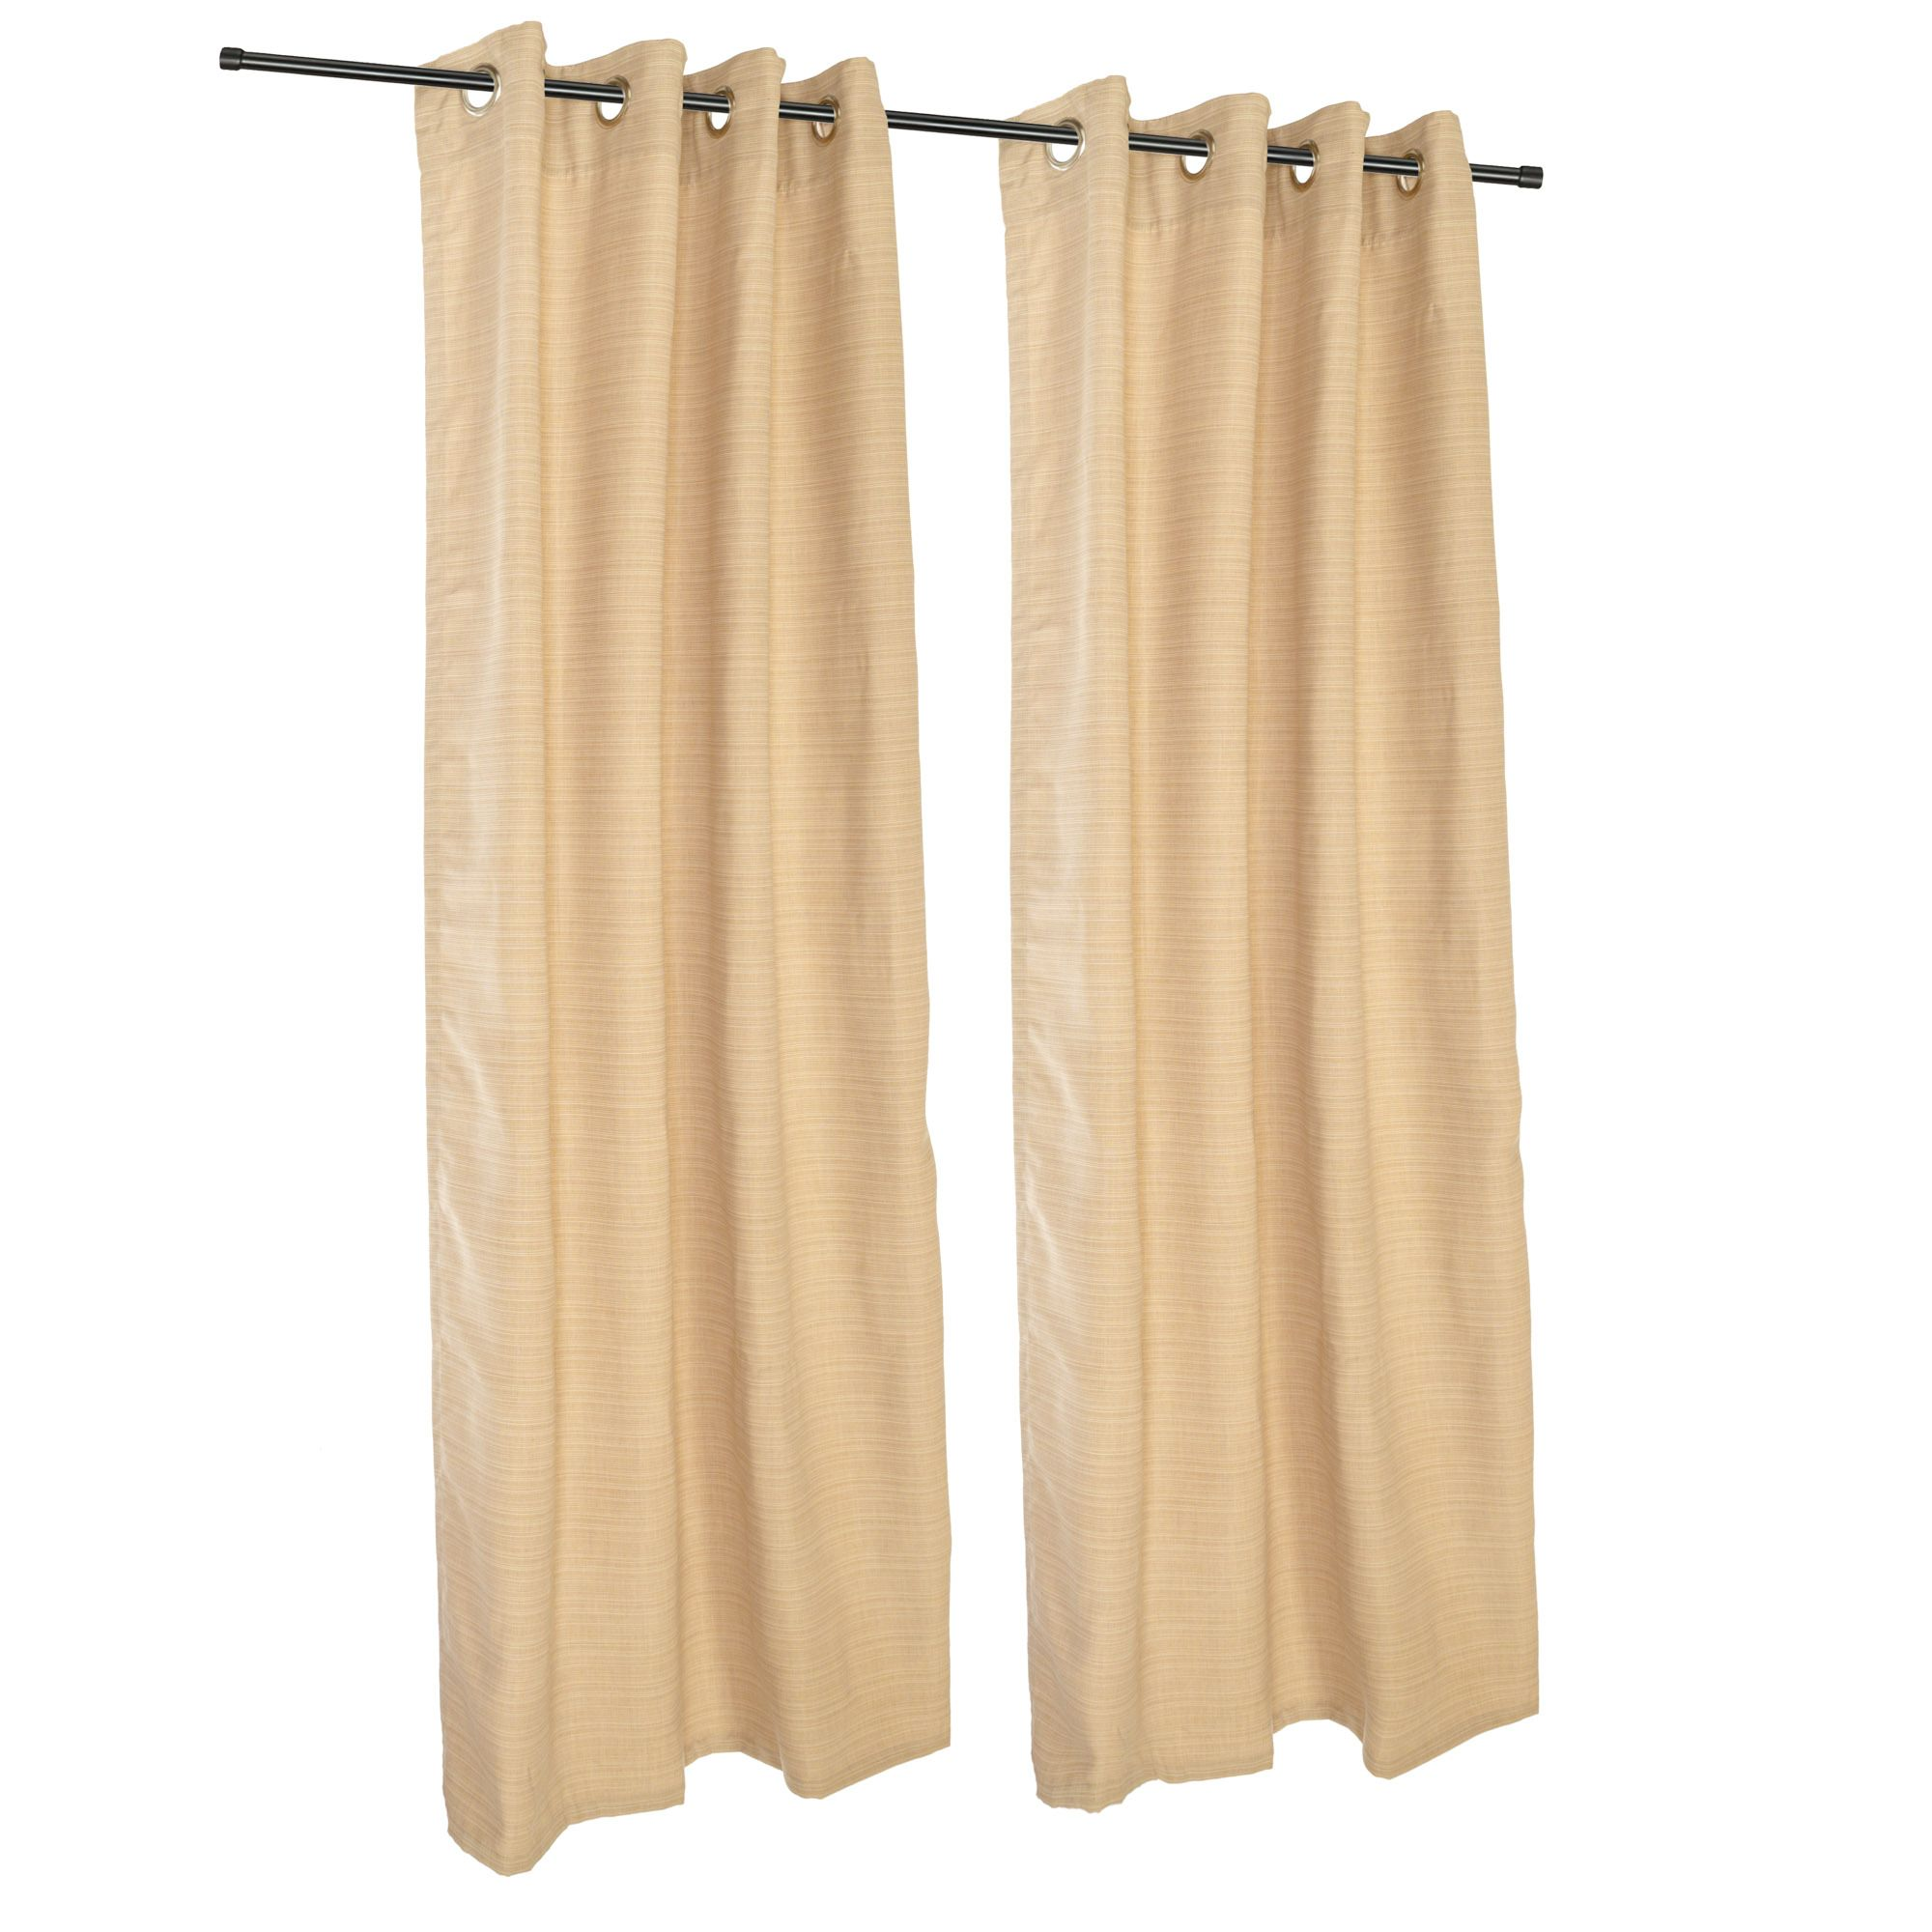 jpg drapes cloth drop outdoor curtain custom holders for v l screen sunbrella grommet curtains grommets cabana linen porch black with rod blinds nickel curtainsi panels backyard